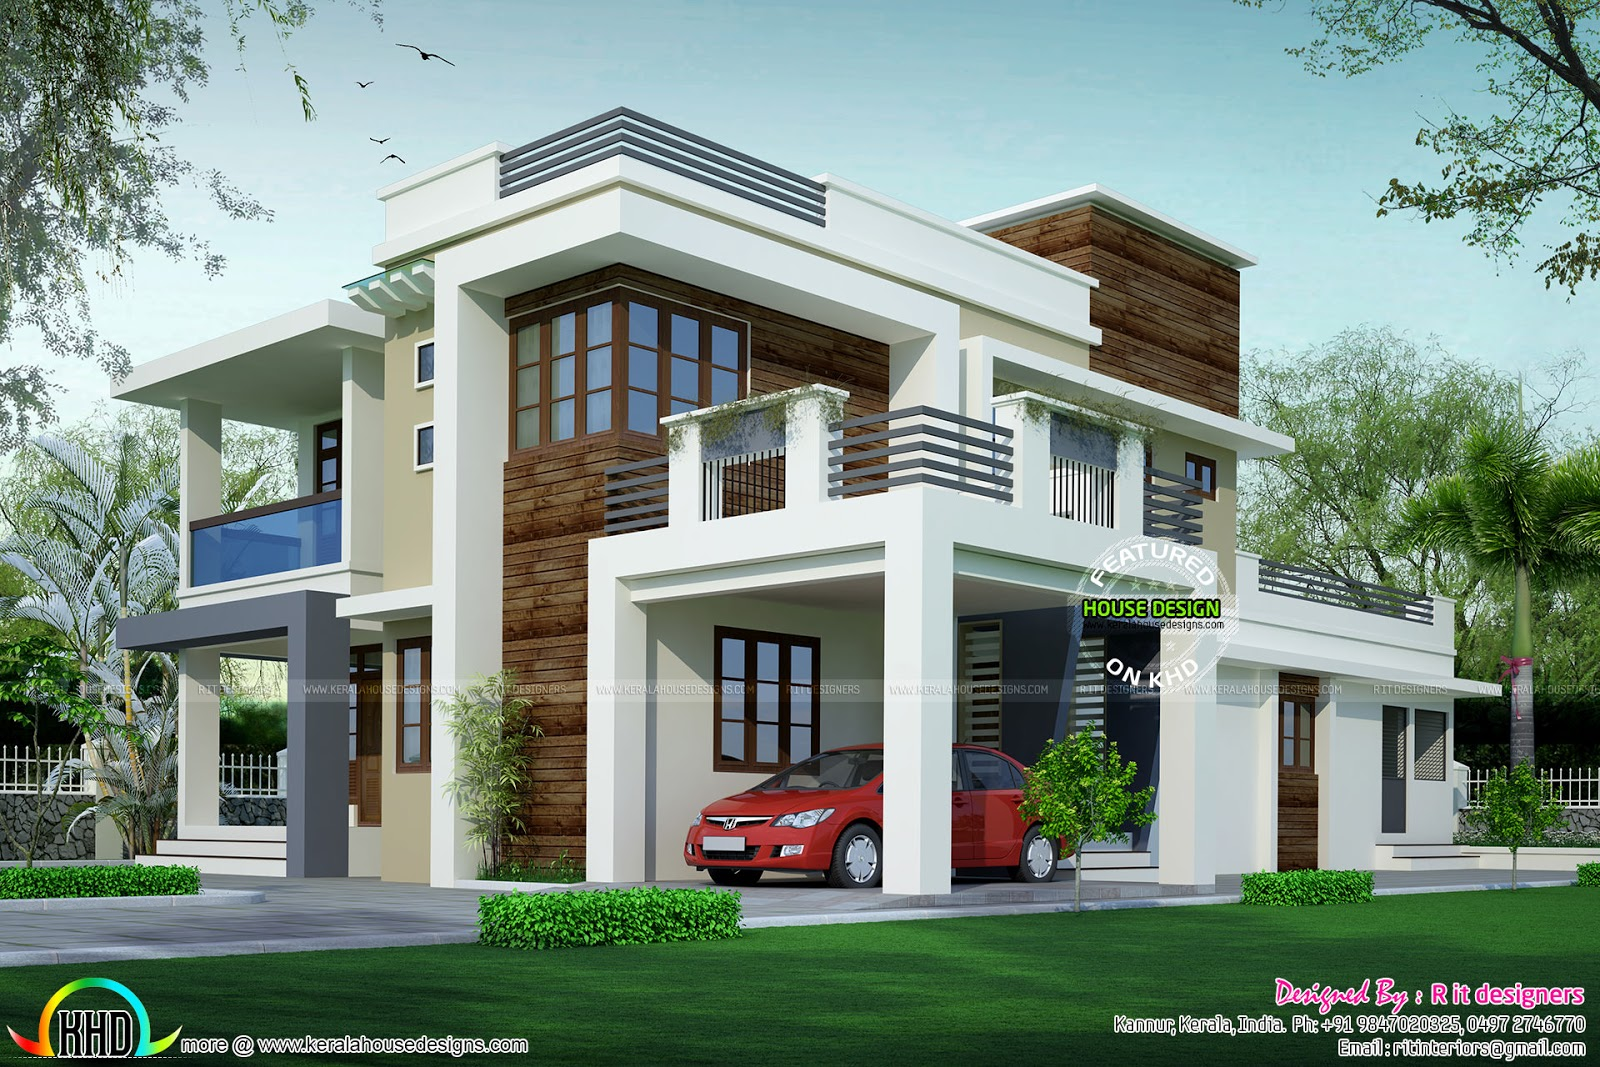 House design contemporary model kerala home design and for New model houses in kerala